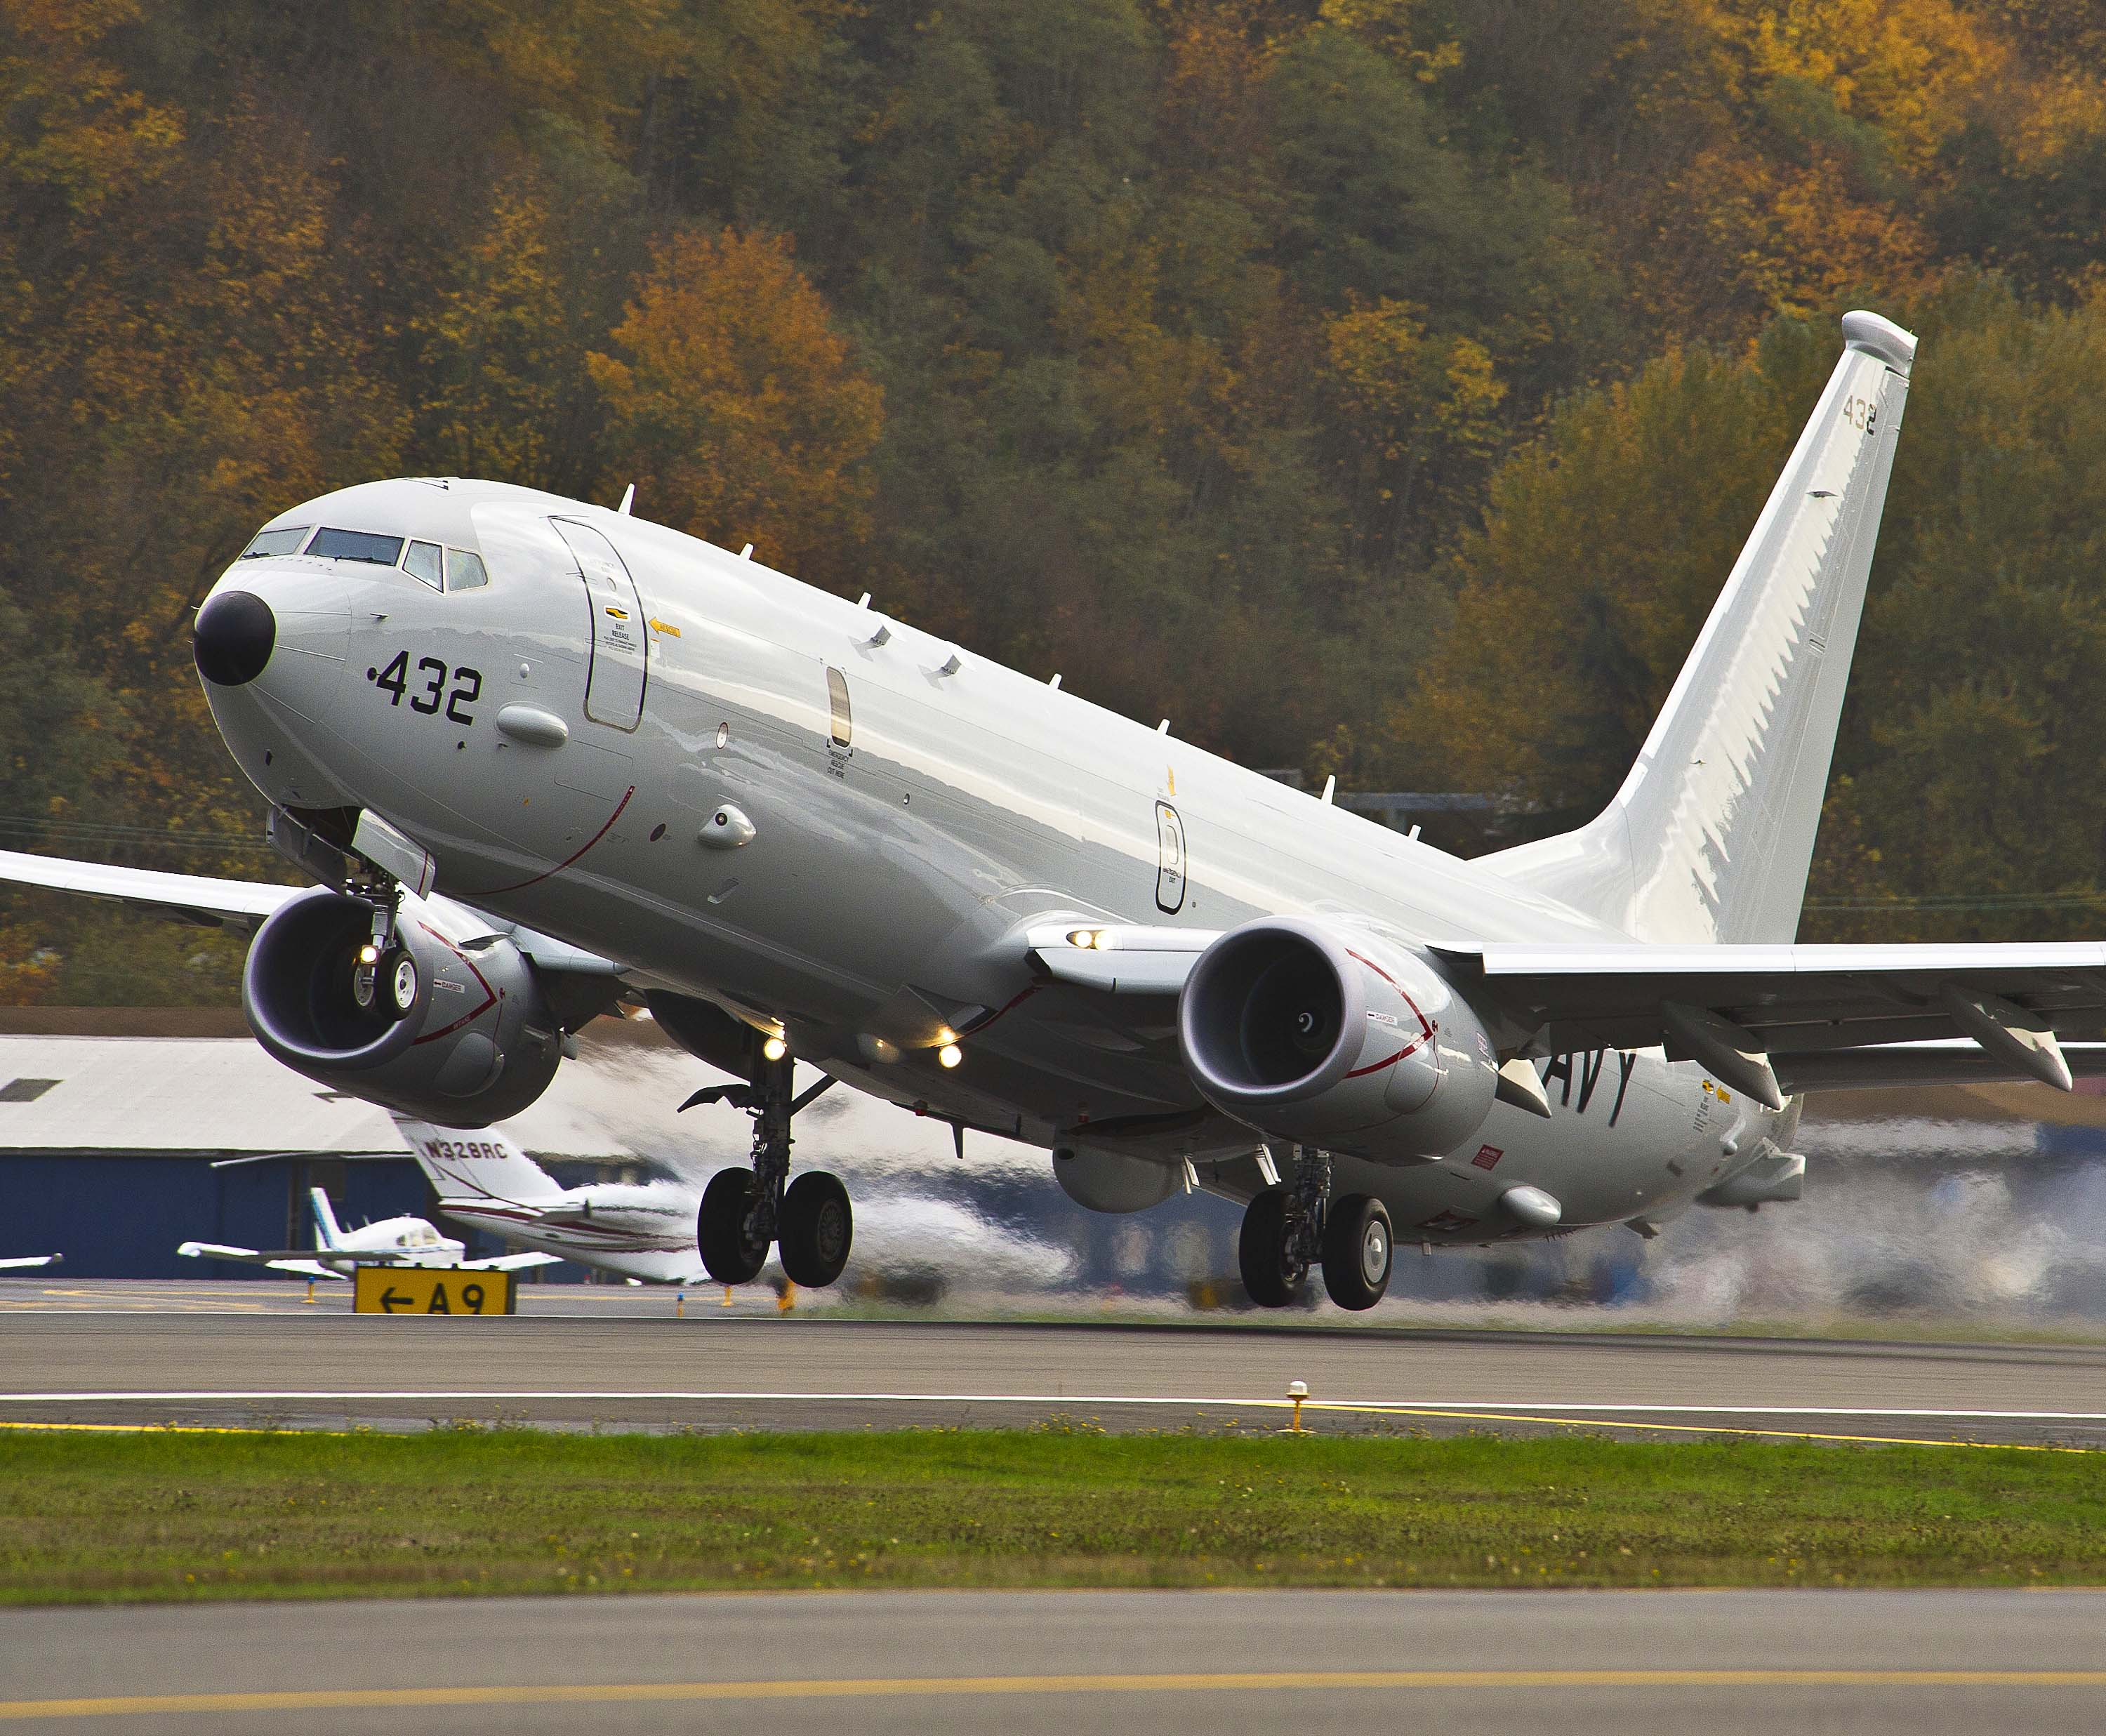 US Navy receives 5th production P-8A Poseidon